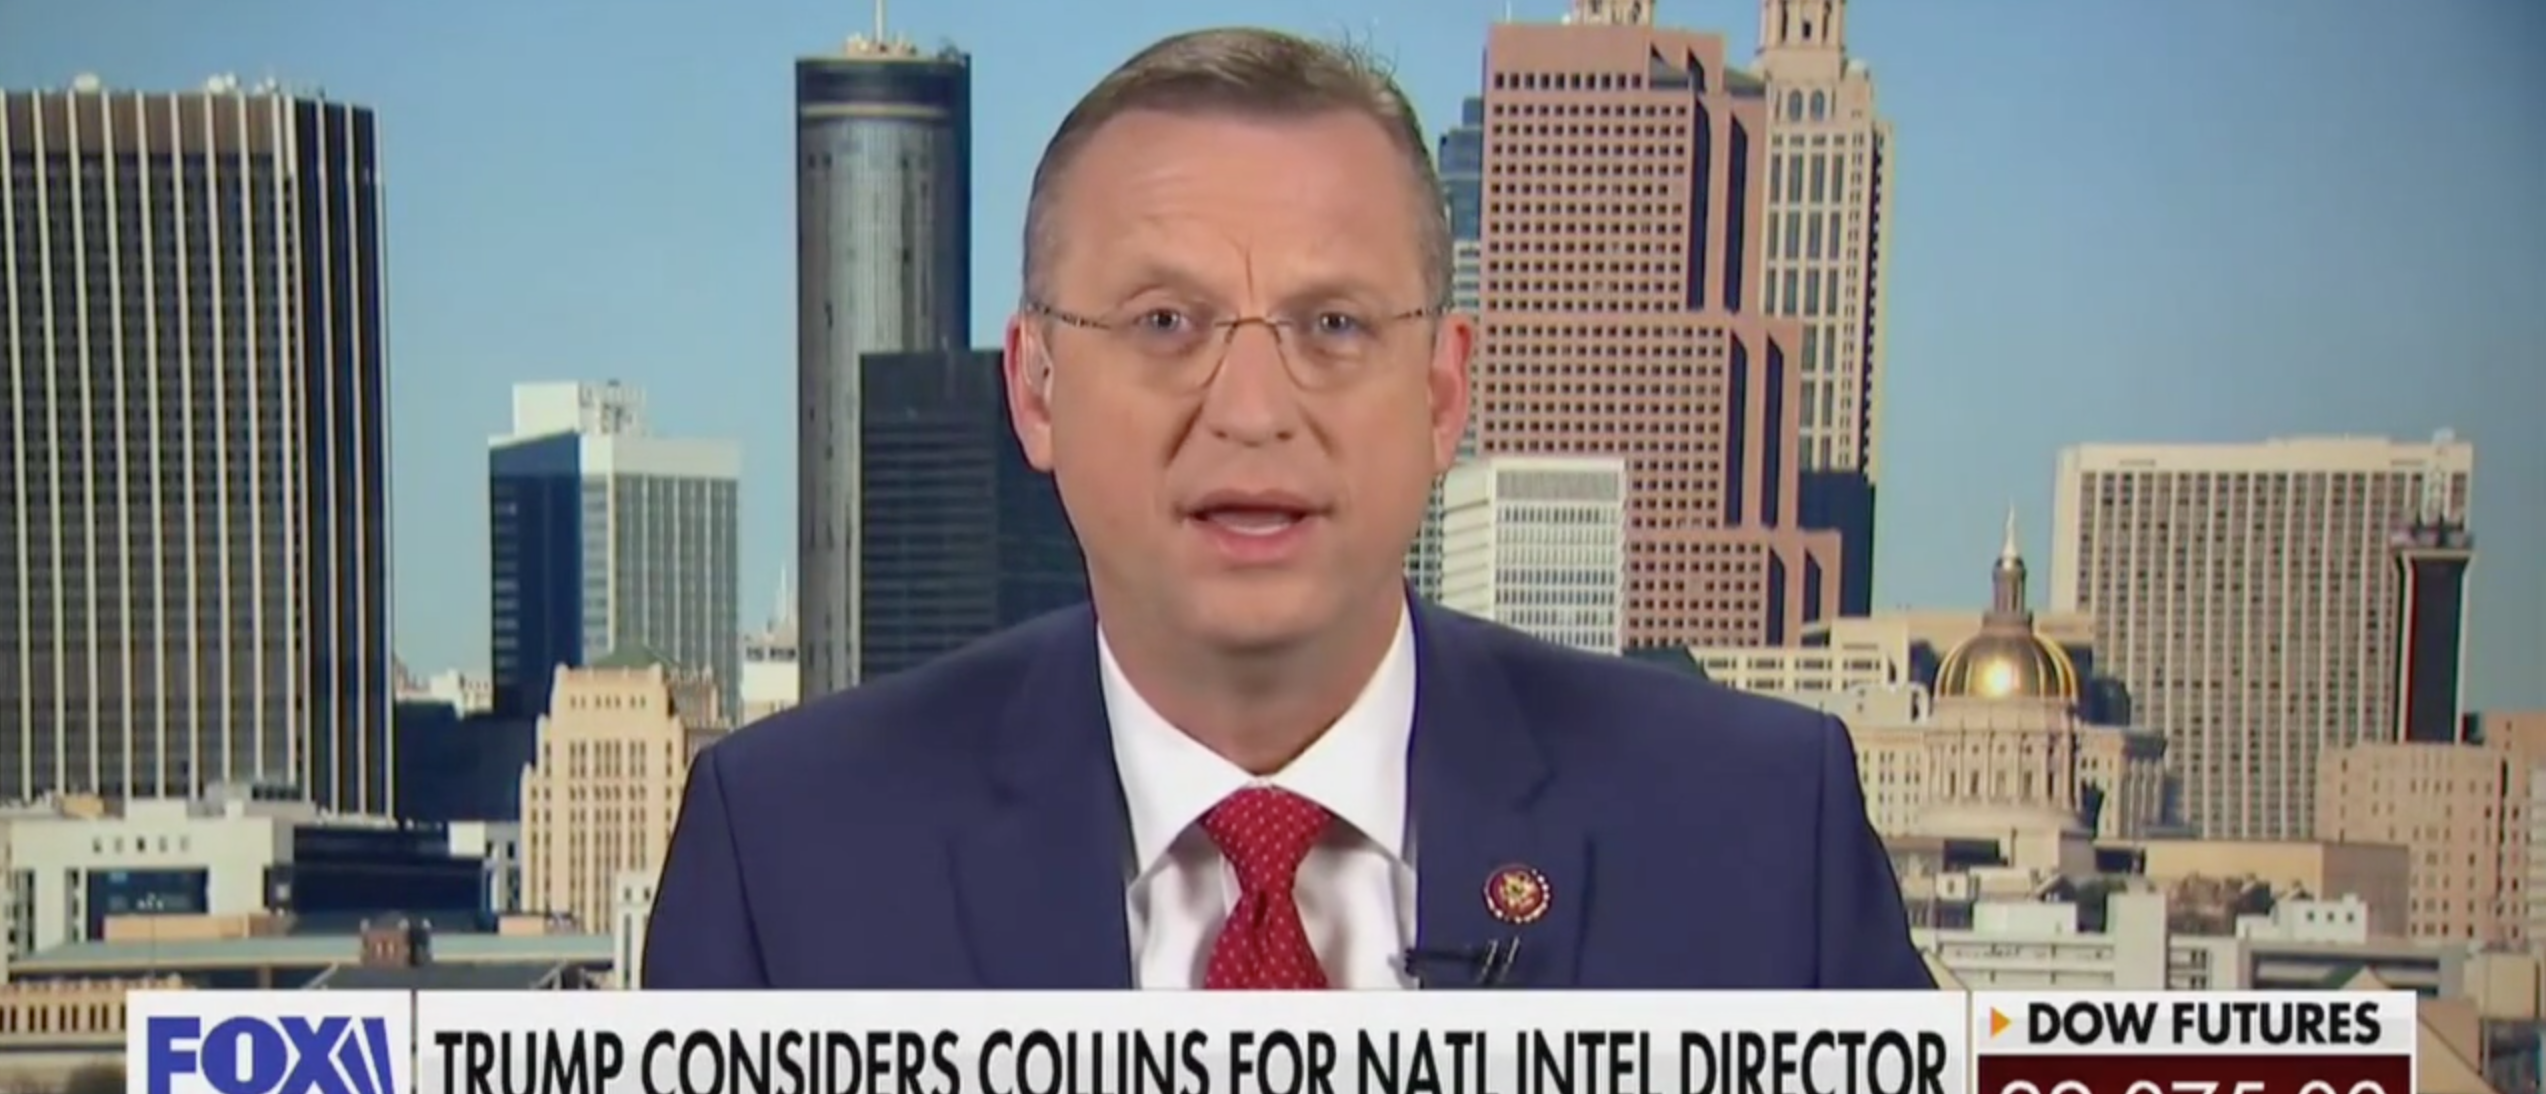 'Not One I Would Accept' — Georgia Rep. Doug Collins Says He Doesn't Want Trump's Top Spy Nomination